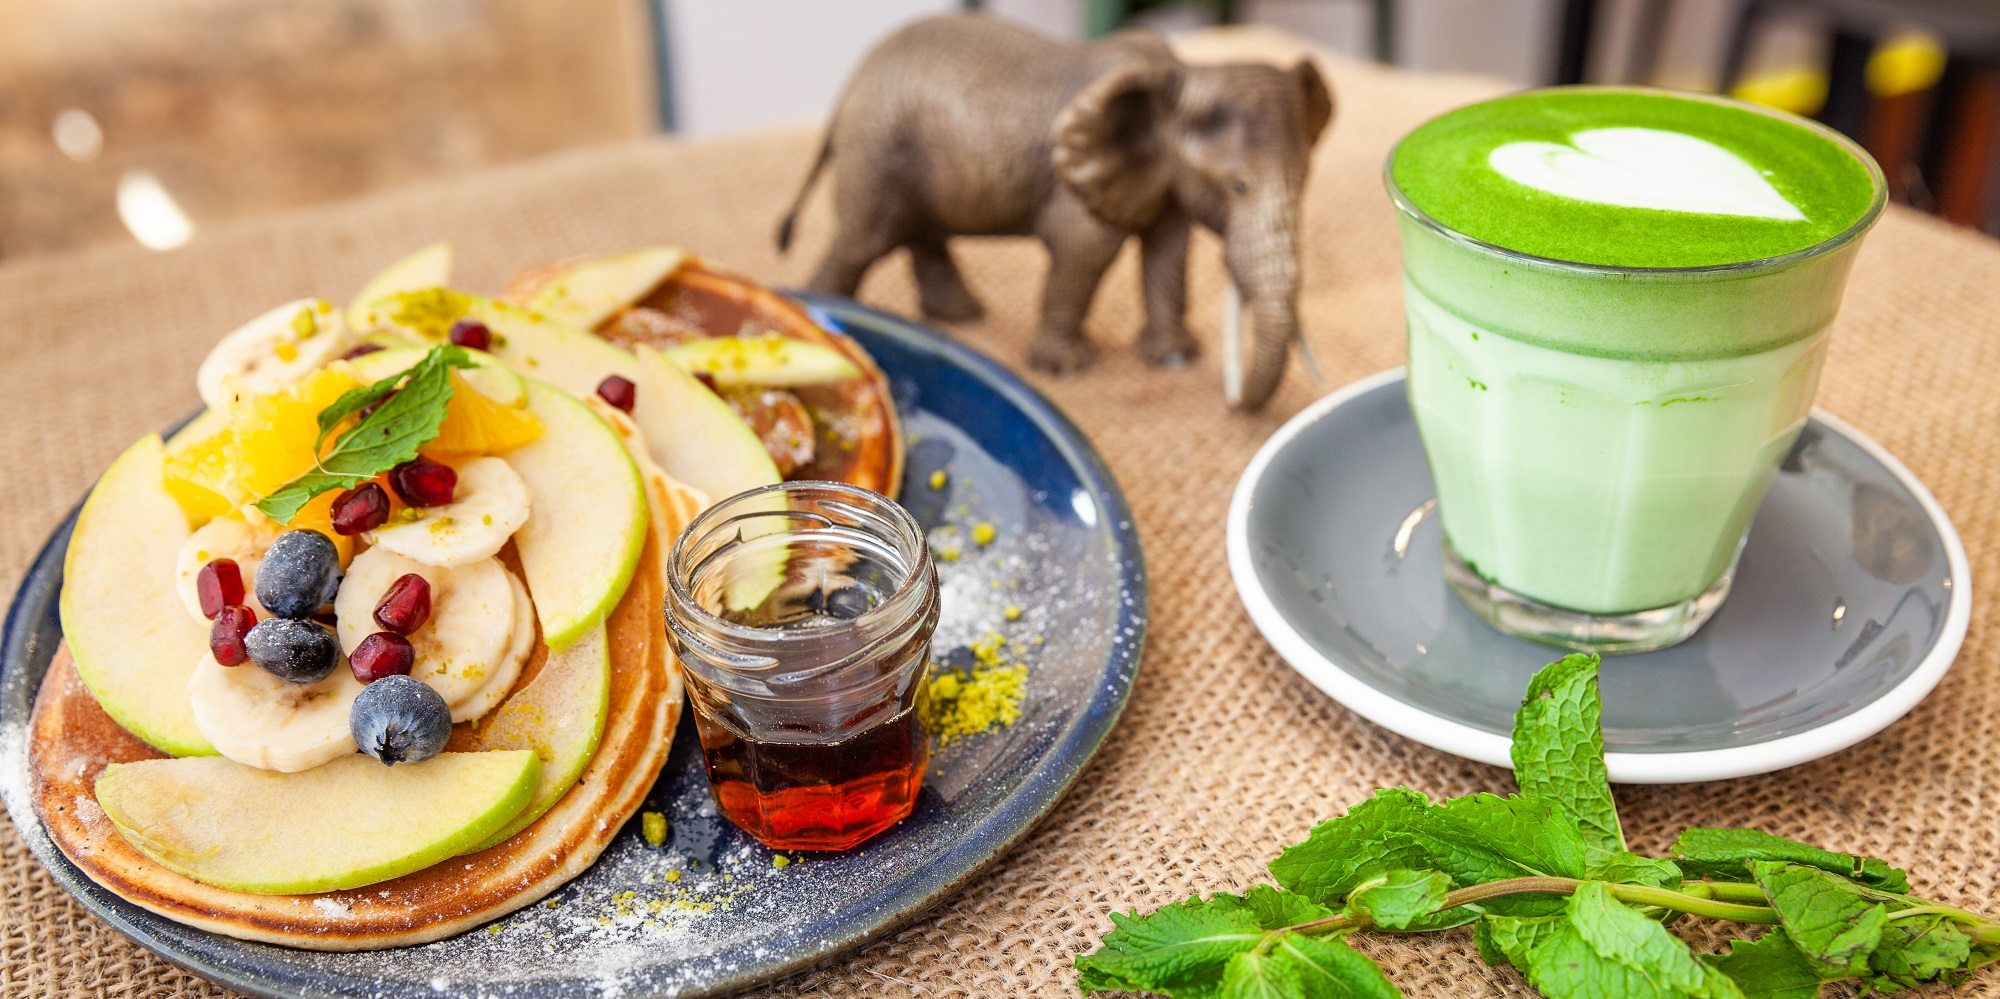 Brunch Jozi Café Paris (75005 Paris)